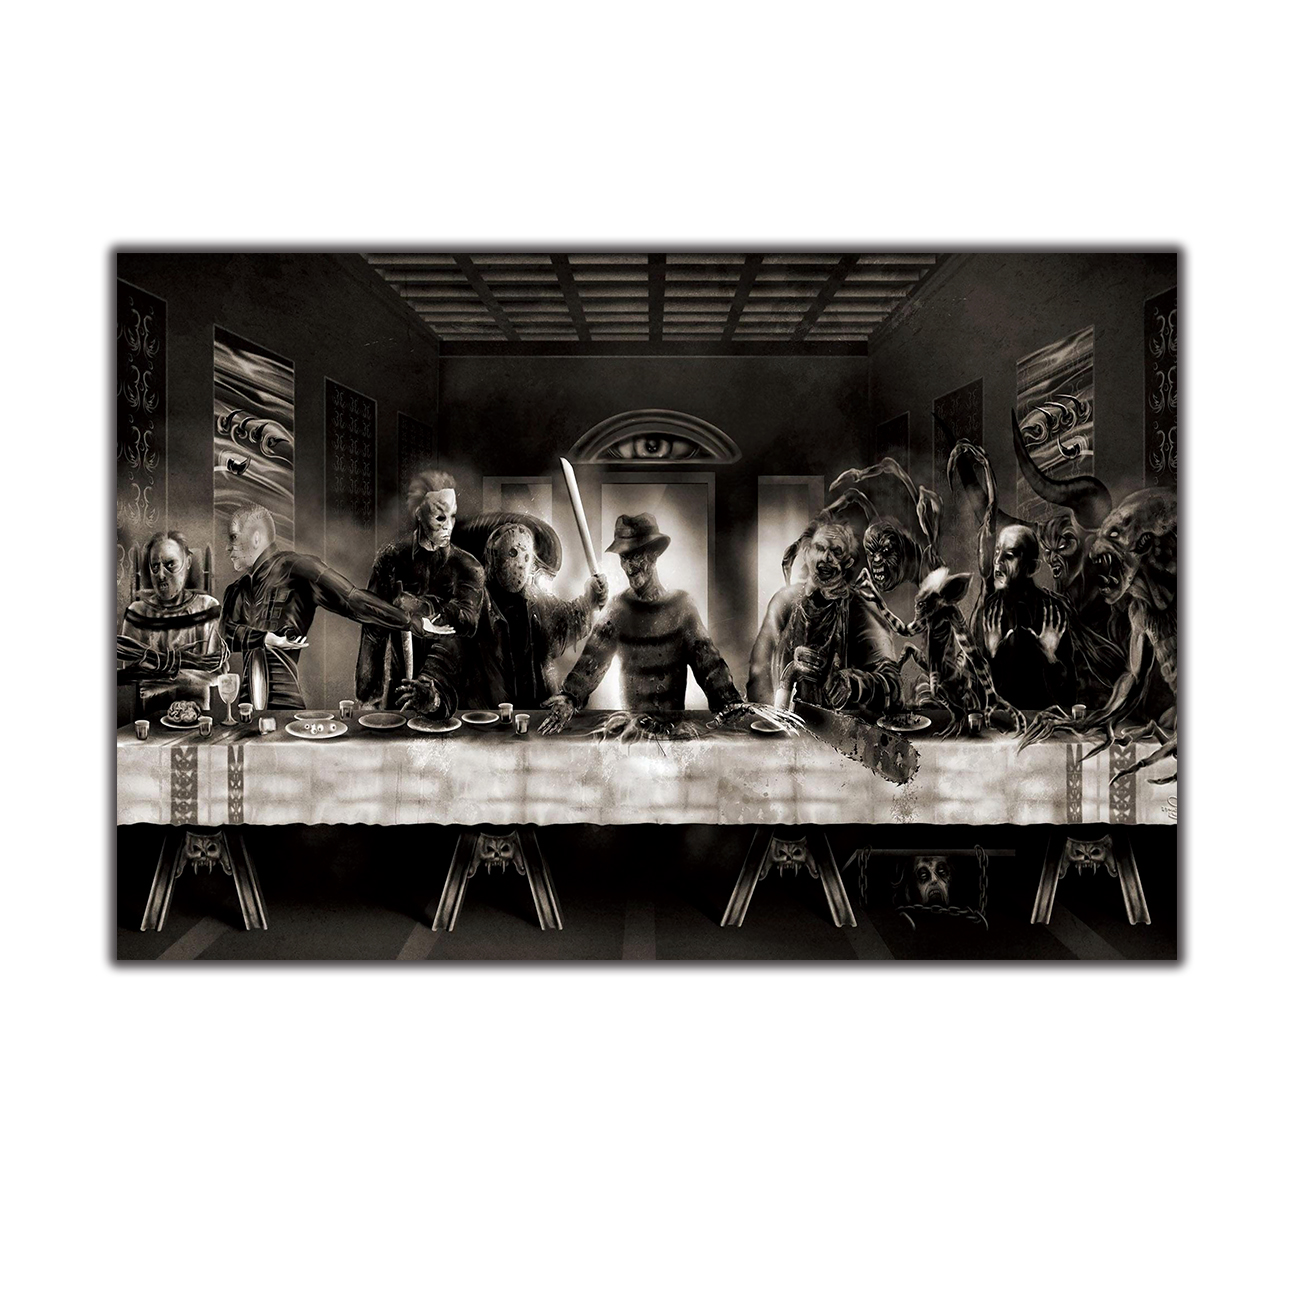 Avengers Infinity War The Avengers 3 The Last Supper Hot Silk Poster C-3026